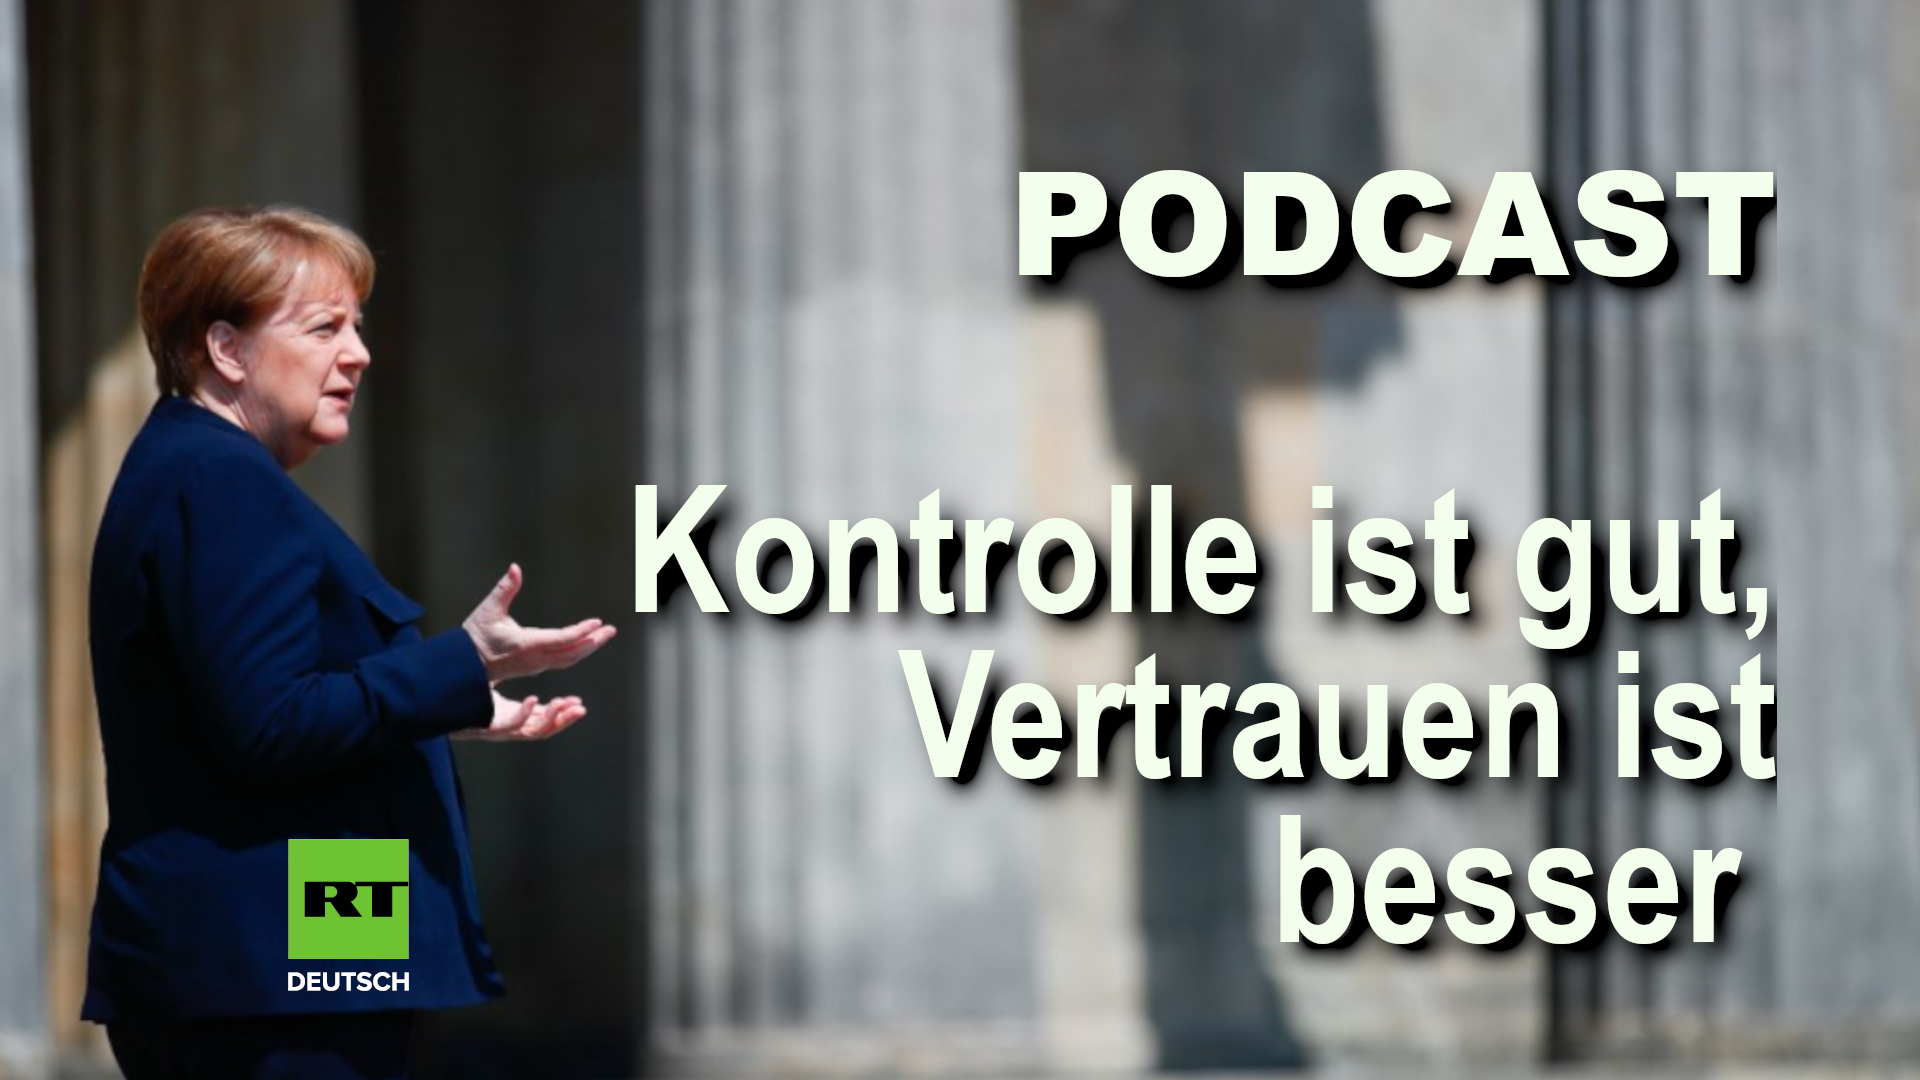 Podcast title